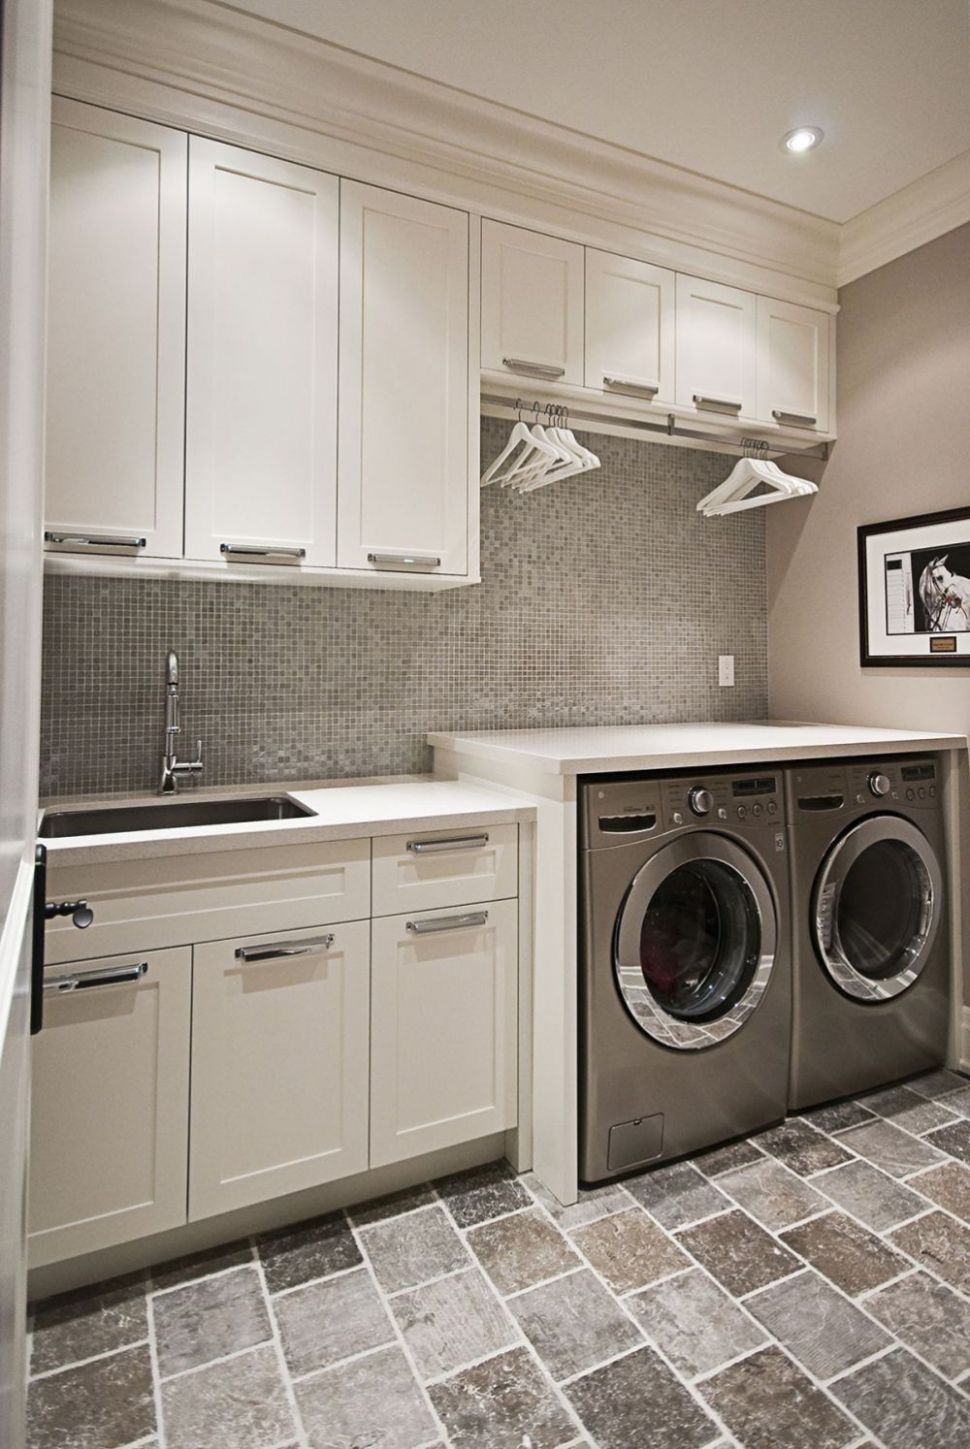 10 Beautiful and Efficient Laundry Room Designs | Laundry room ...